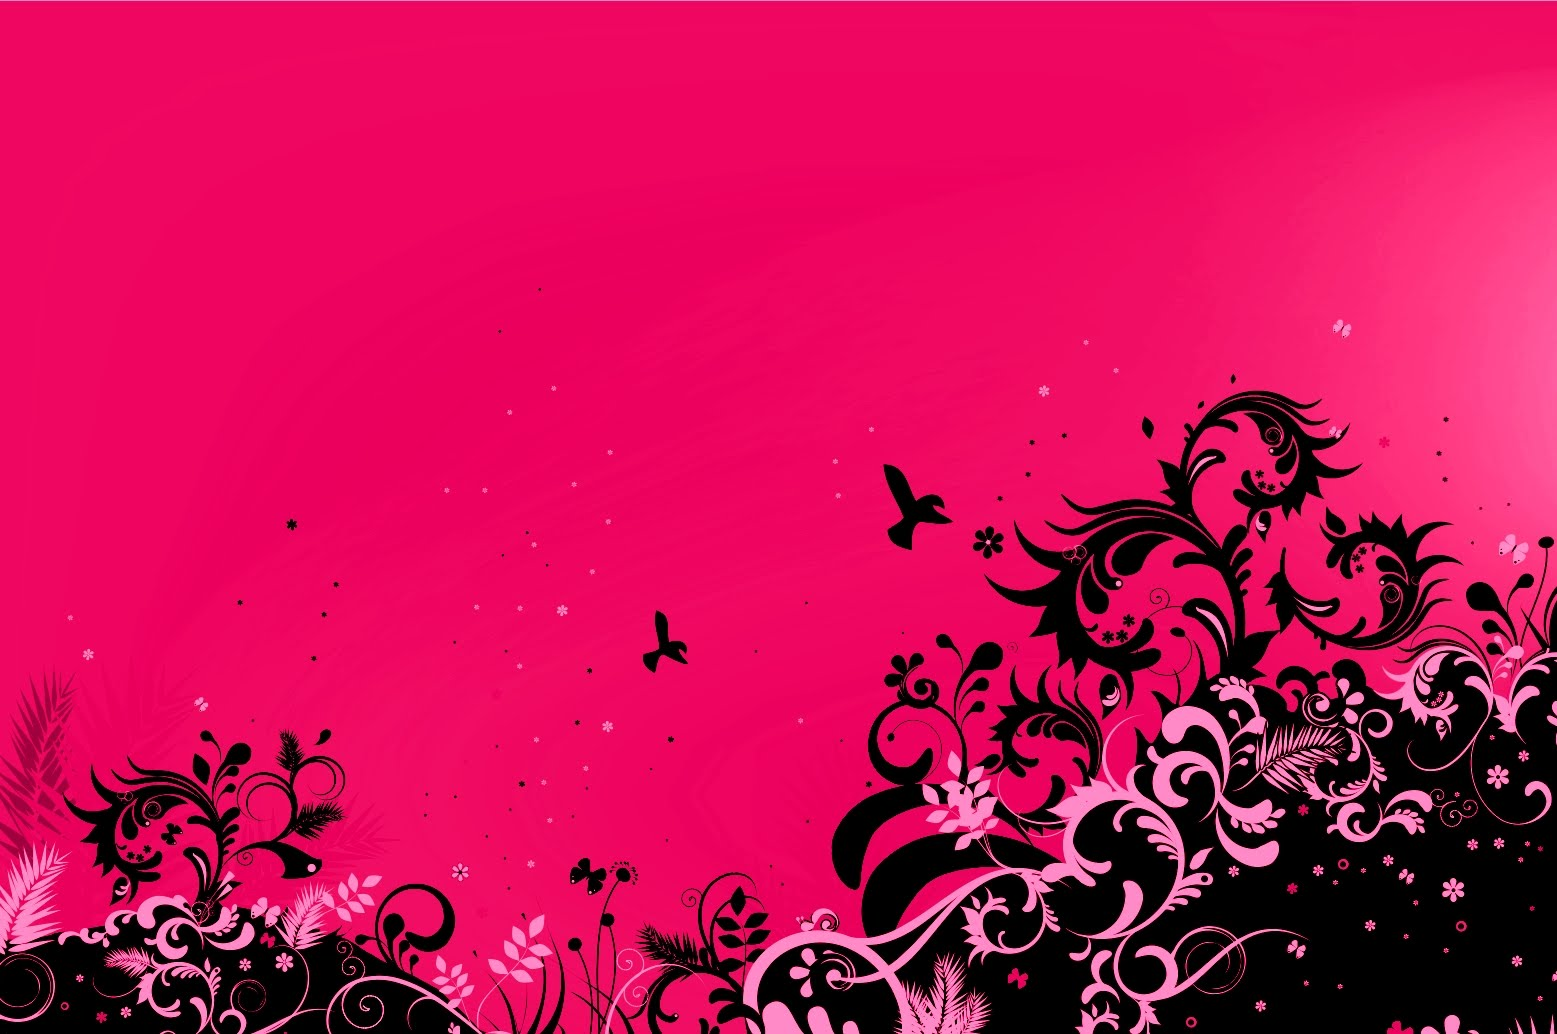 Abstract Wallpapers Cool and Beautiful | My image